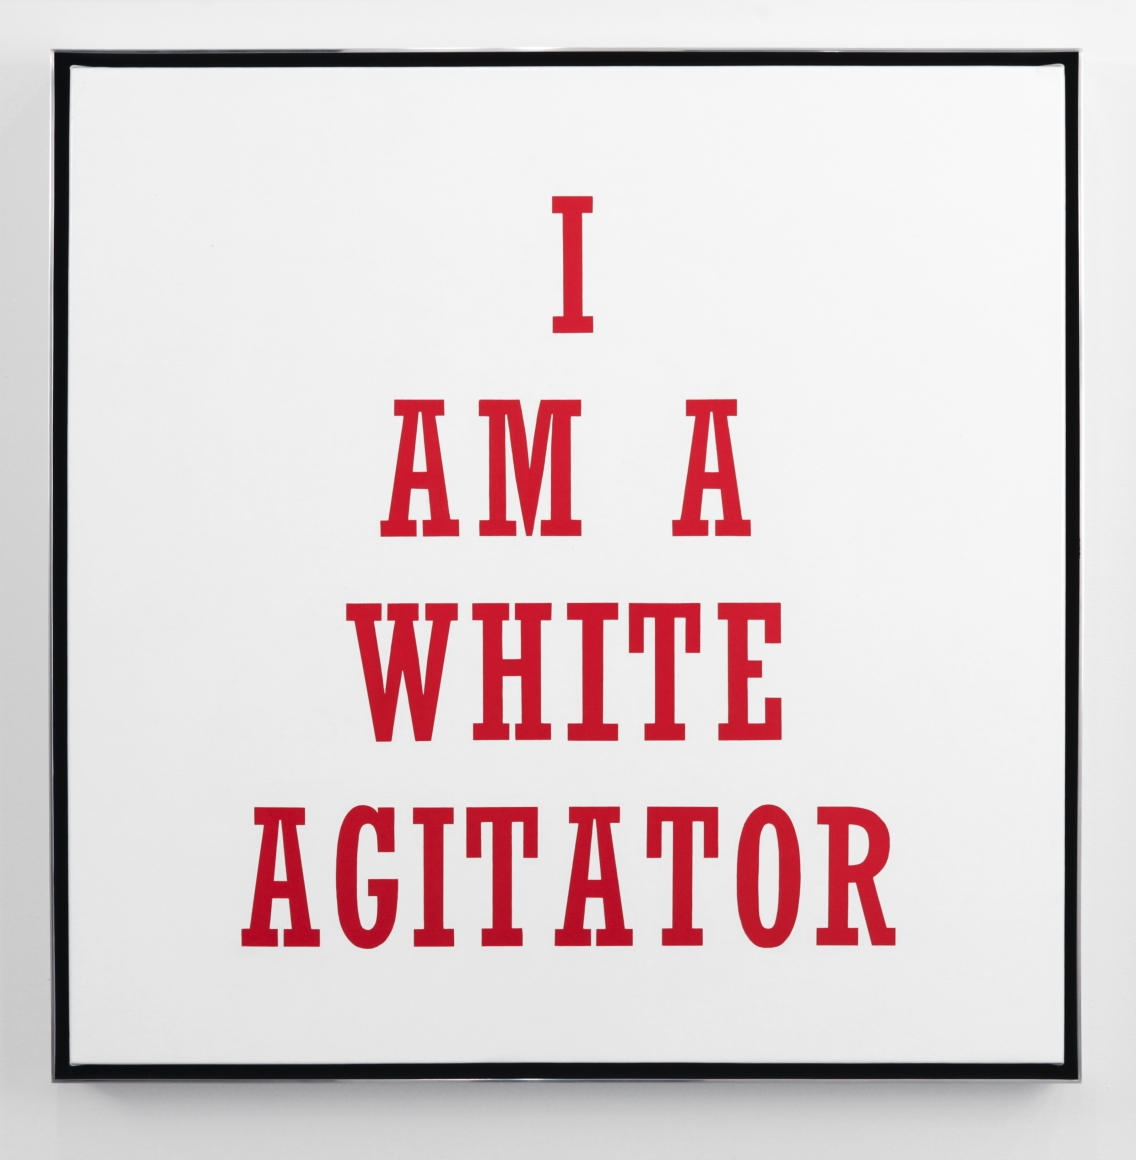 Hank Willis Thomas, I Am A White Agitator, 2012